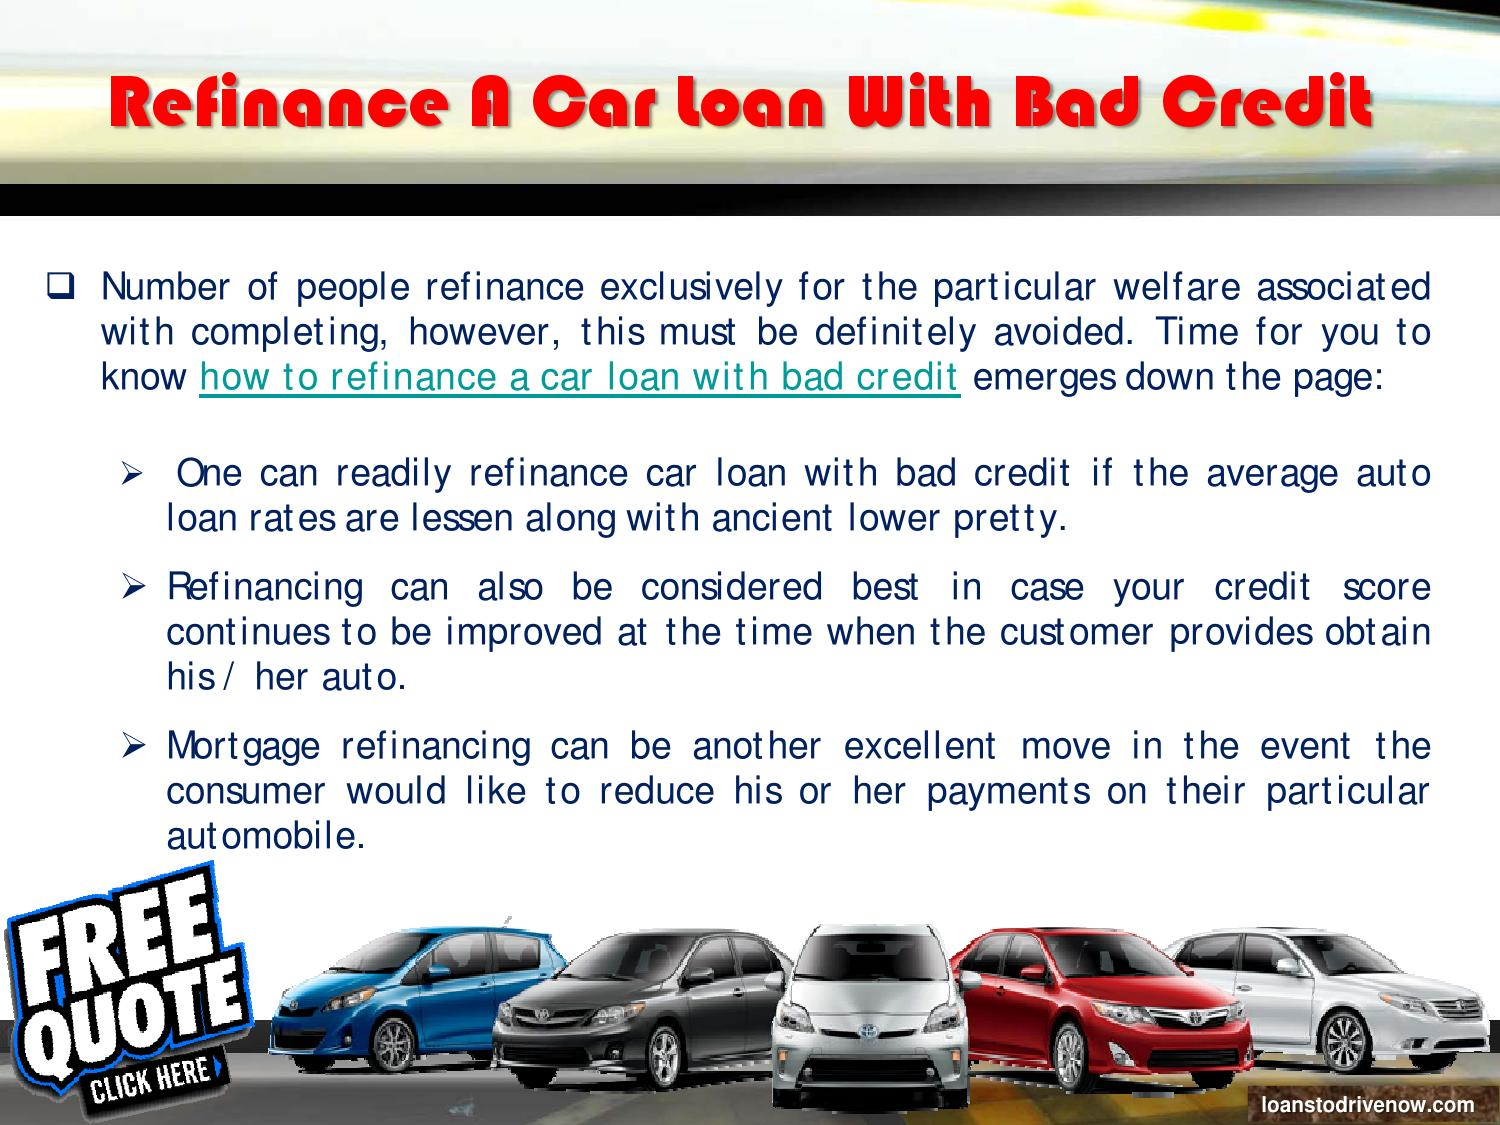 How To Refinance A Car Loan With Bad Credit By James William Issuu